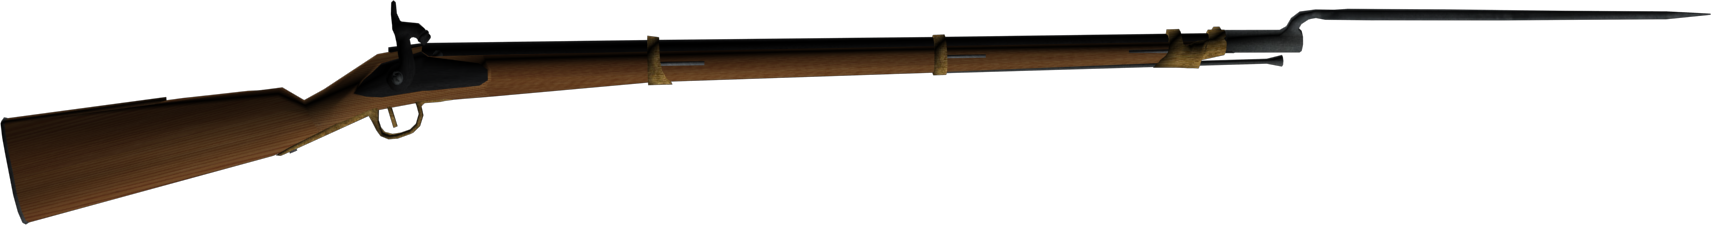 musket_m1839.png